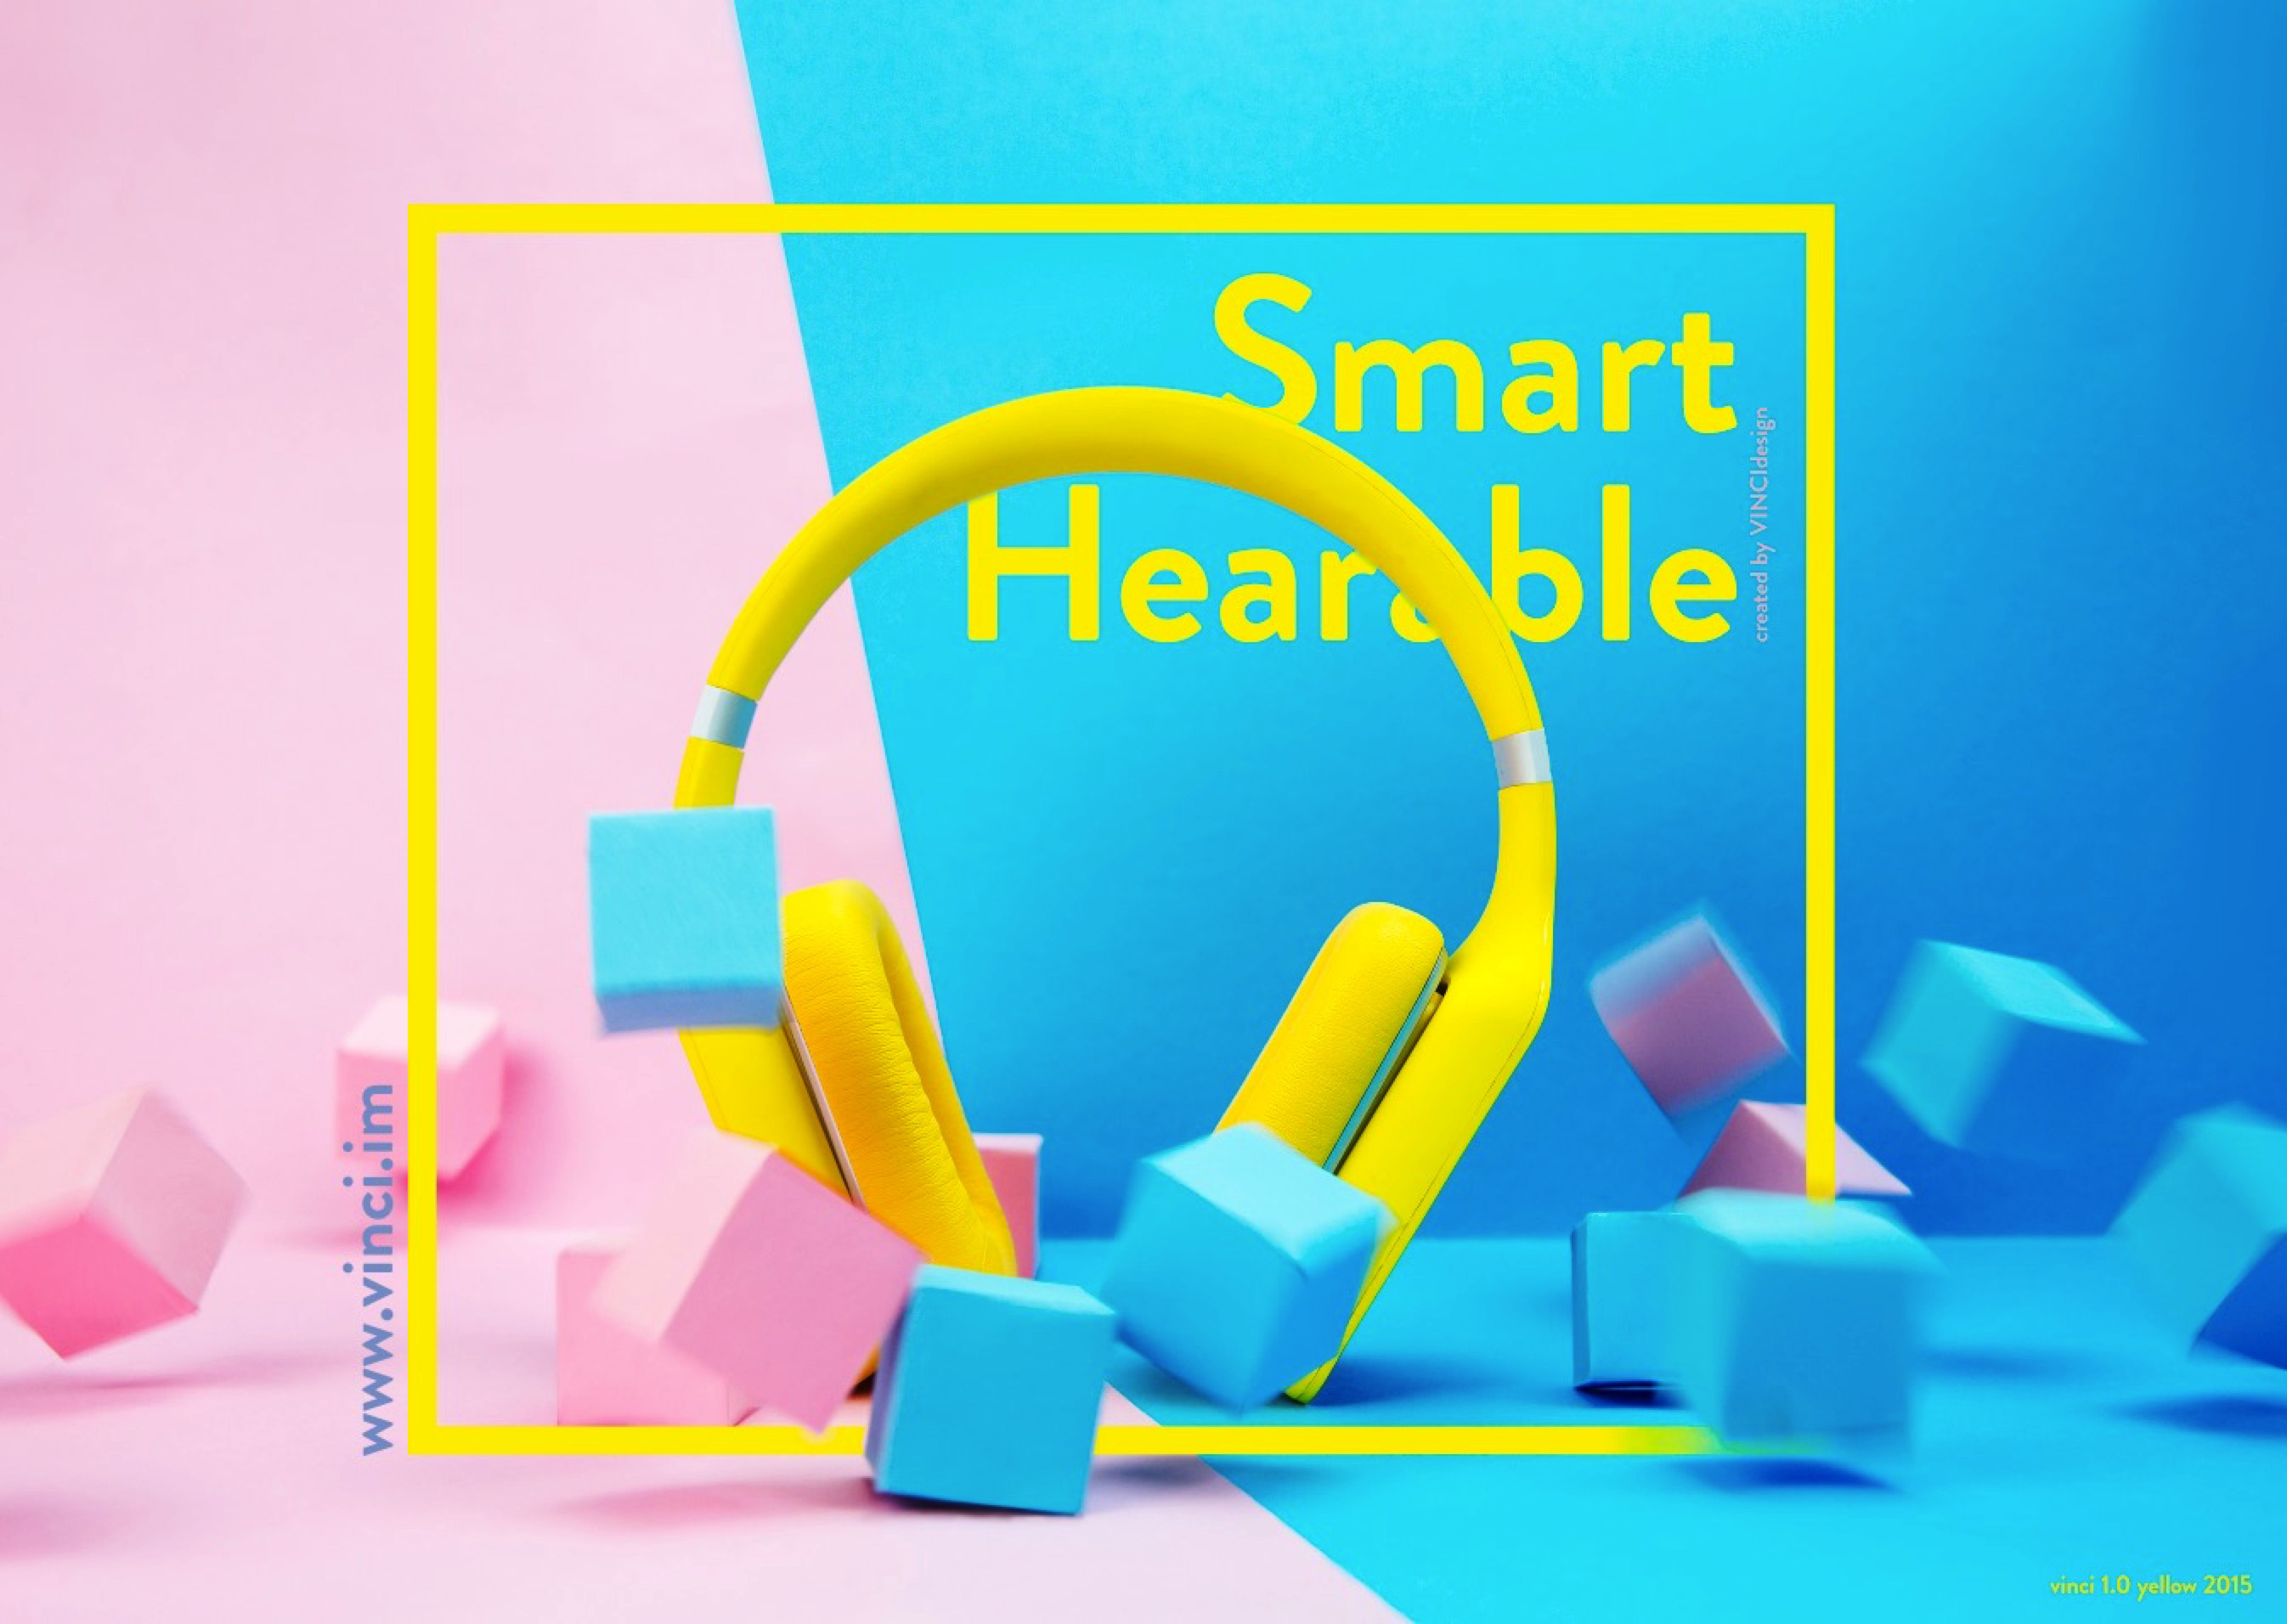 A VINCI Smart Hearable device in folk yellow from the official Facebook page of VINCI.